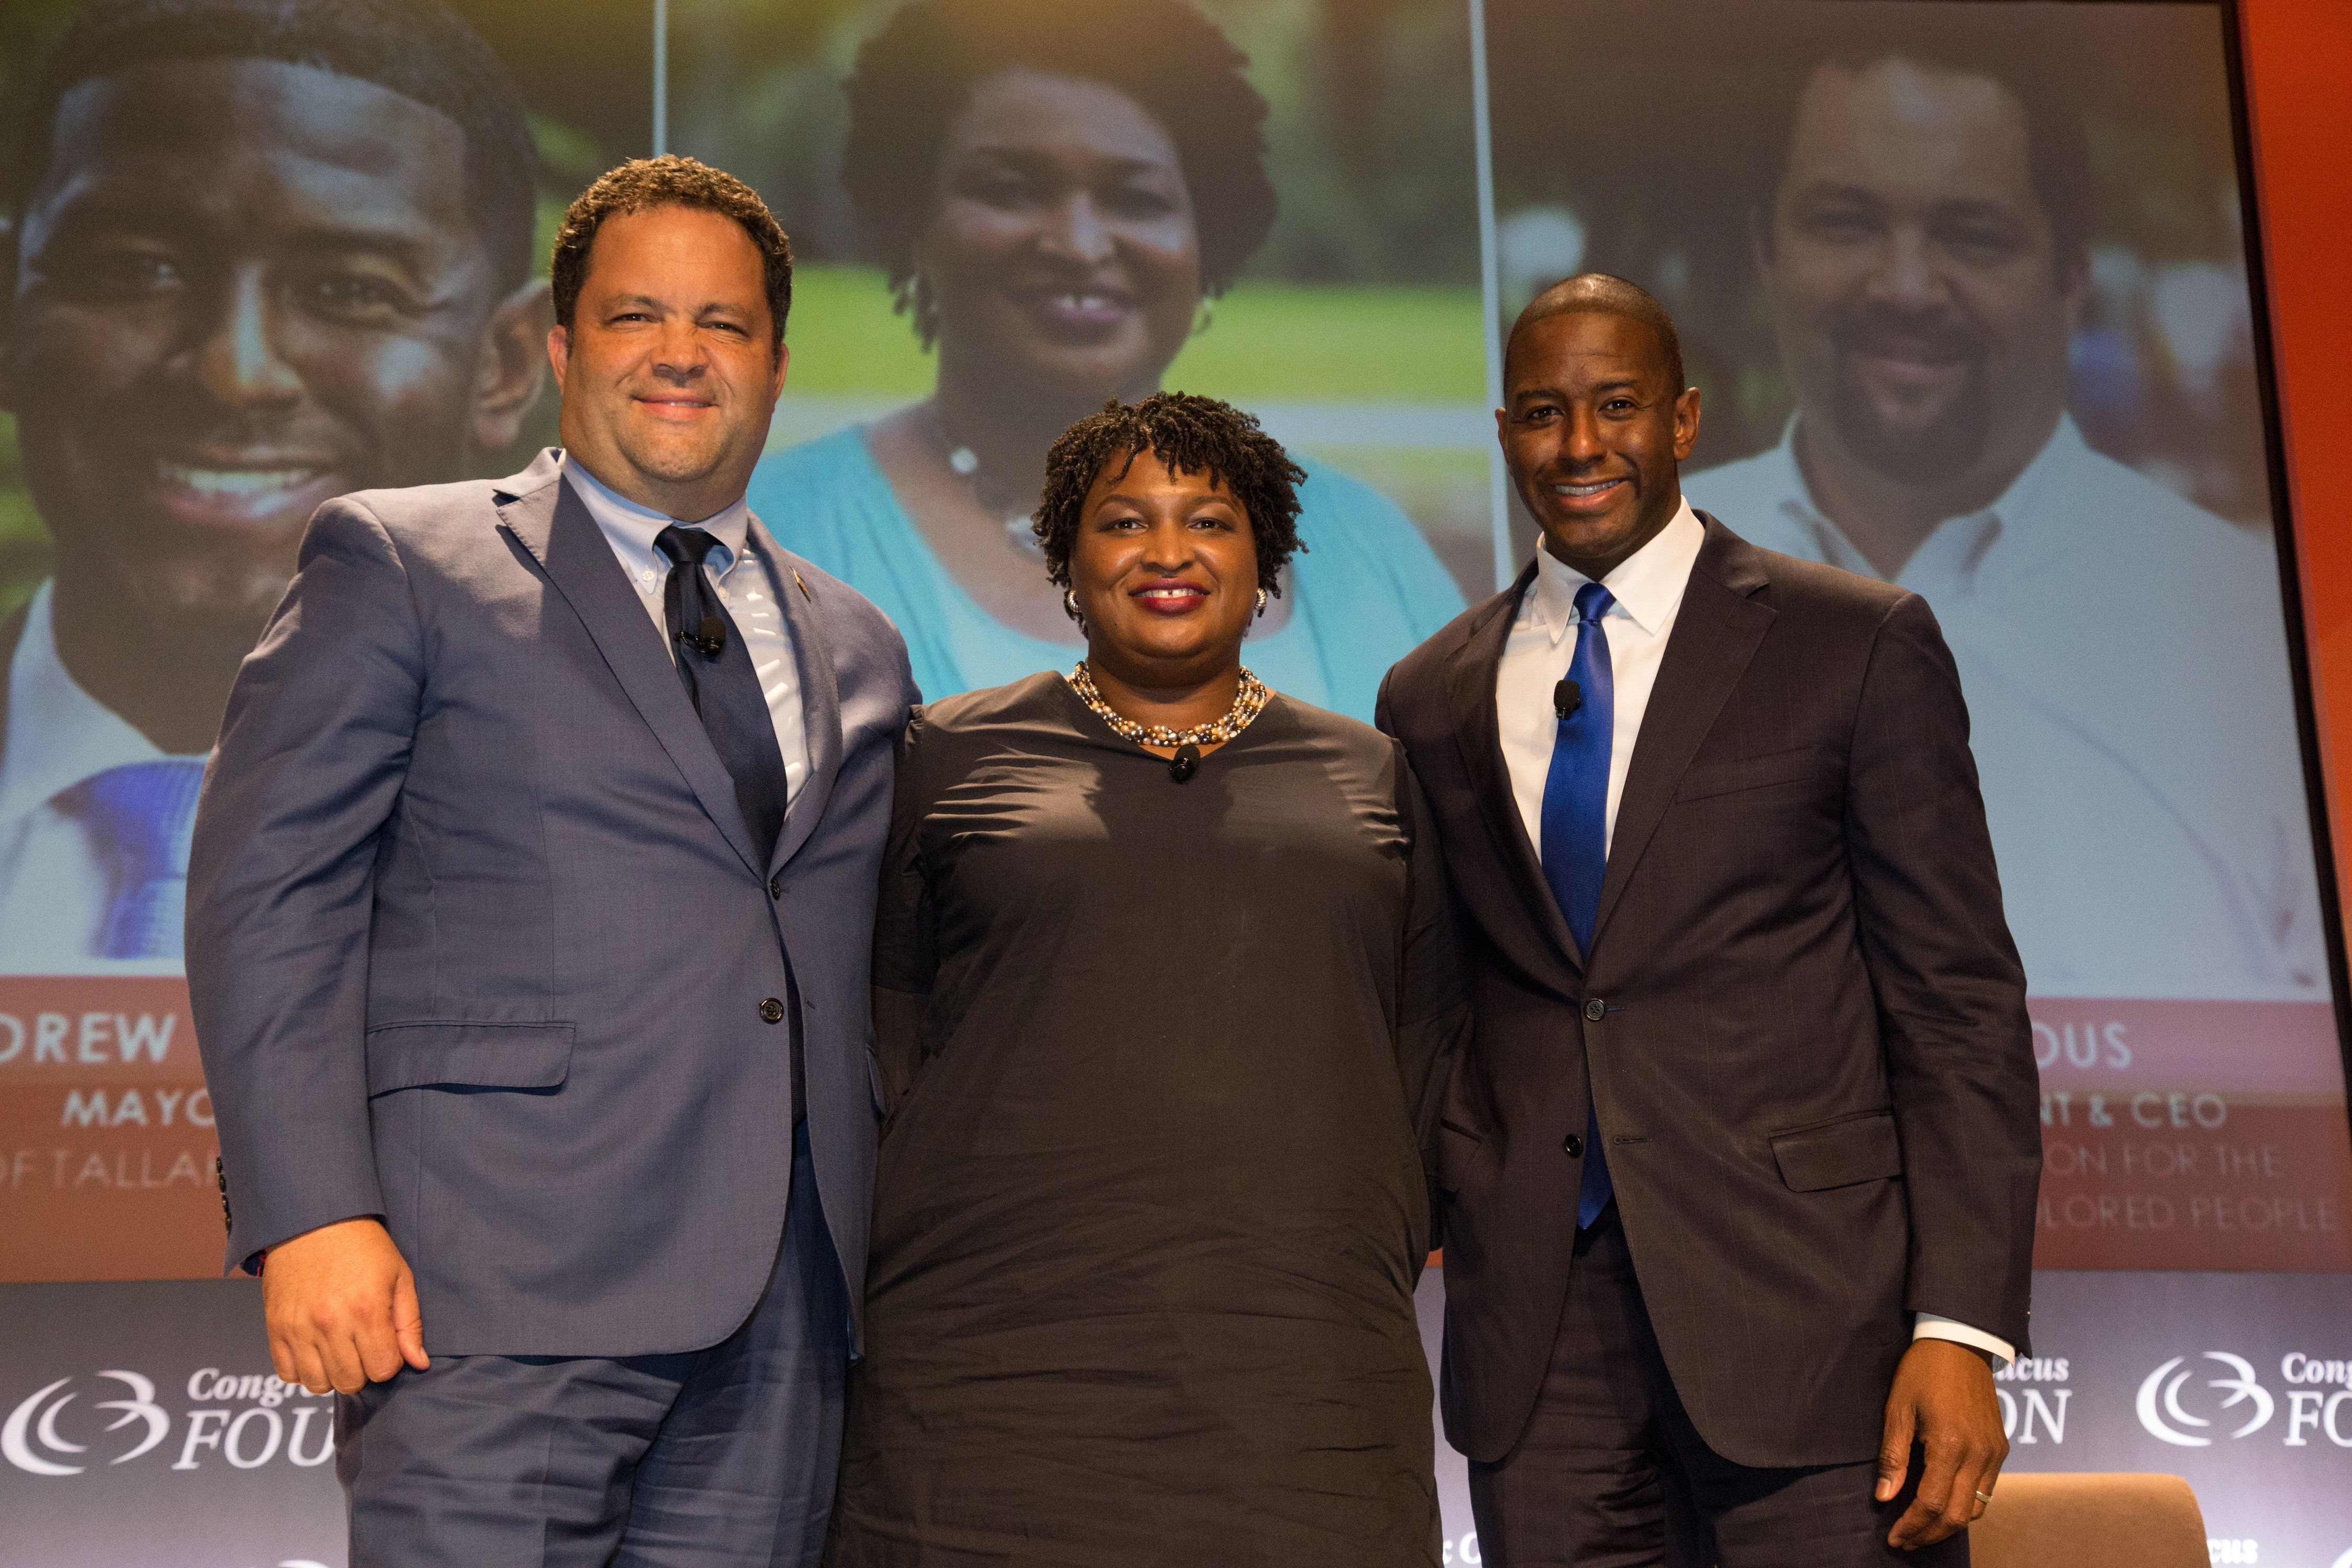 Democratic nominee for governor of Maryland Ben Jealous; Democratic nominee for governor of Georgia Stacey Abrams; and Democr